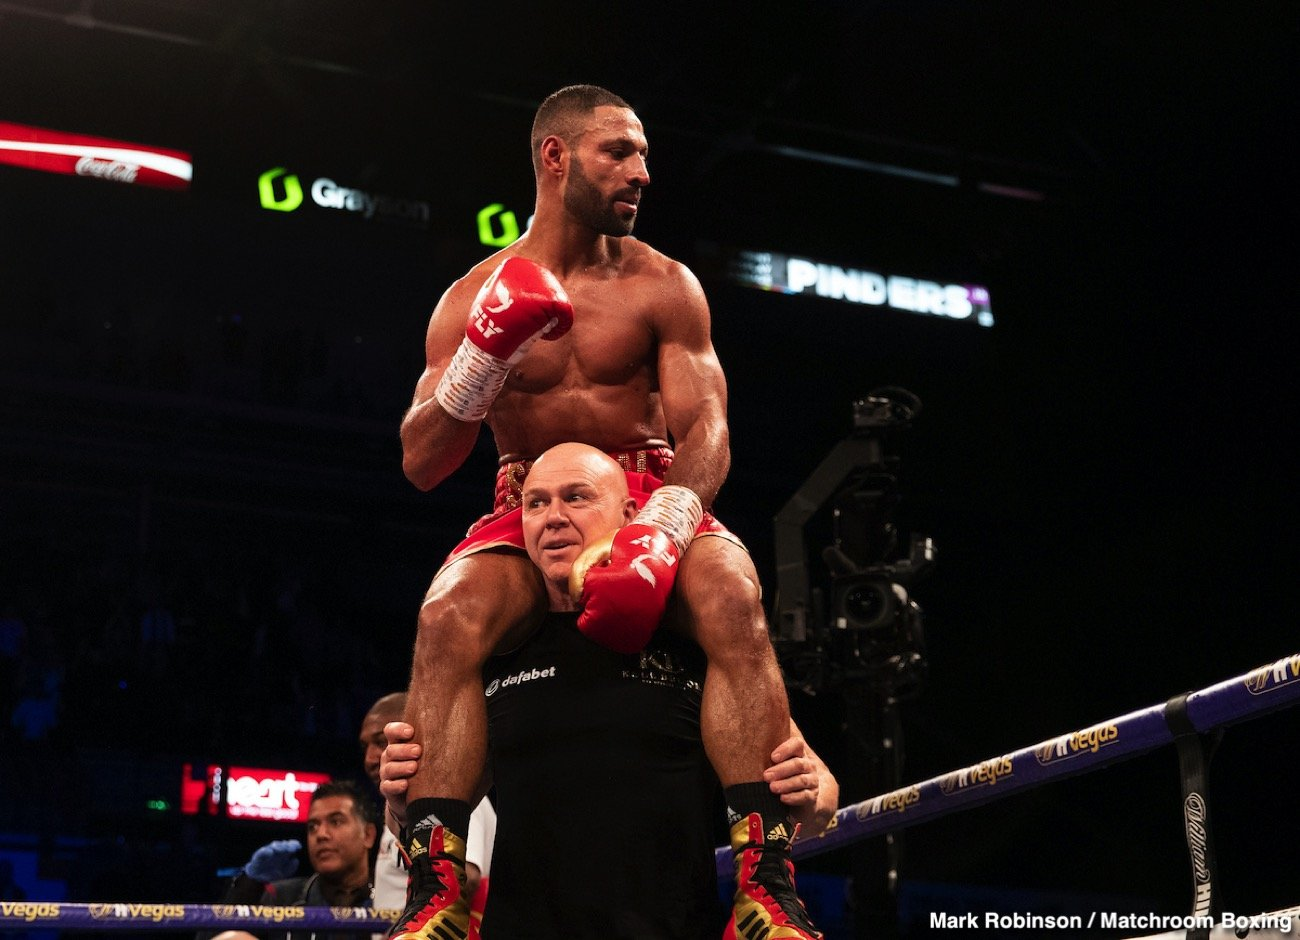 David Allen, Dorian Darch, Eddie Hearn, Kell Brook, Kid Galahad, Mark DeLuca - Kell Brook (39-2, 27 KOs) looked as good as new on Saturday night in returning from a 14 month layoff to crush his over-matched opponent Mark DeLuca (24-2, 13 KOs) in stopping him in the 7th round at the FlyDSA Arena in Sheffield, England.